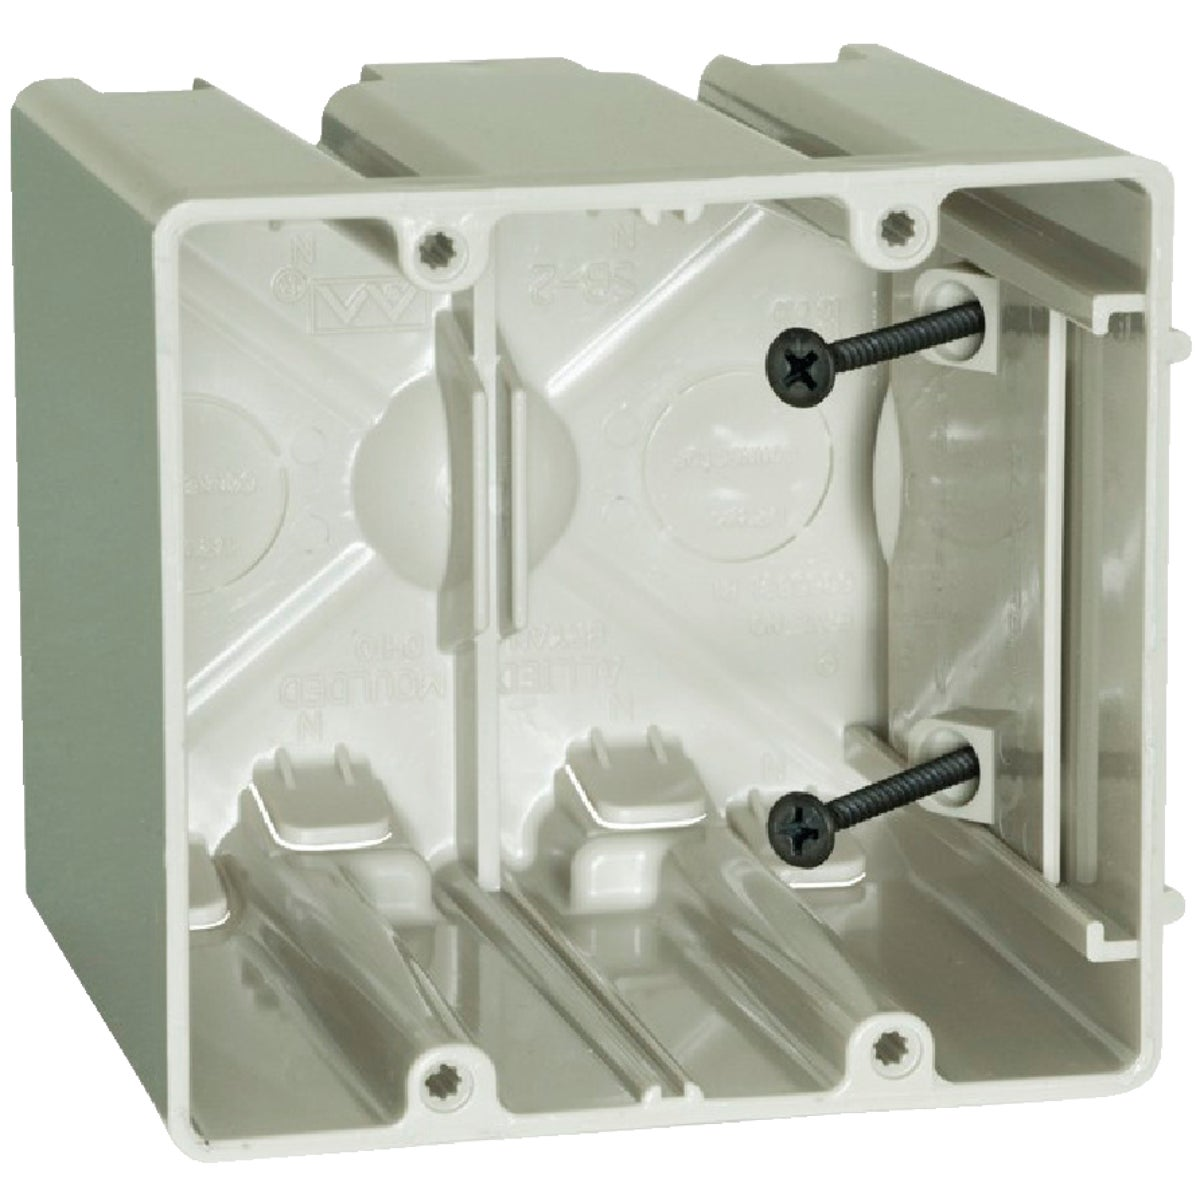 TWO GANG SLIDER BOX - SB-2 by Allied Moulded